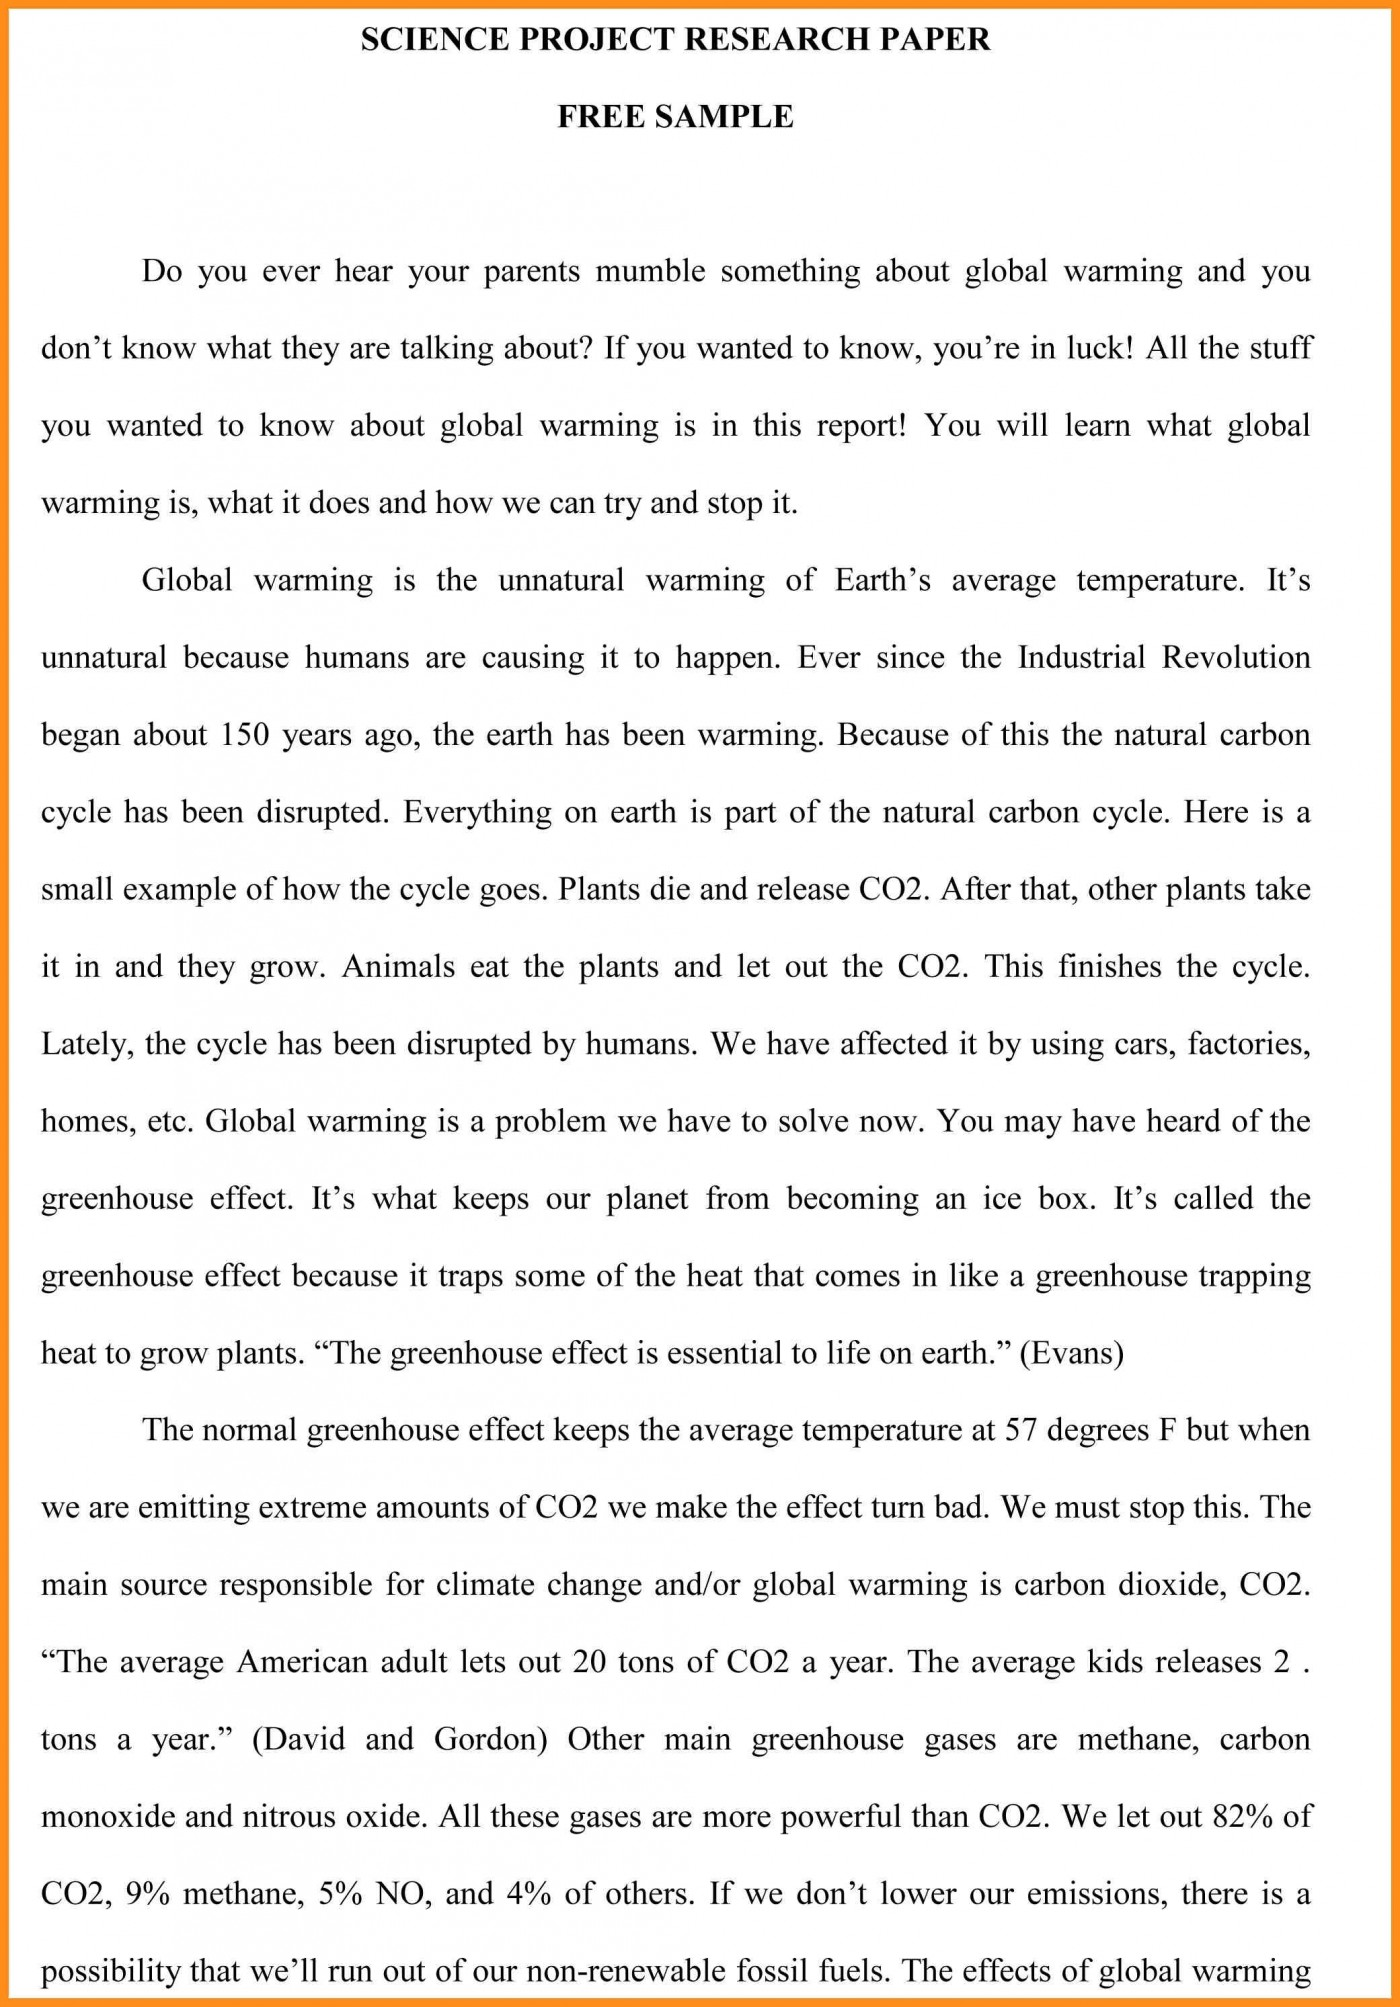 003 Good Essay Topics How To Write English An About Best Argumentative Inside Interesting Arg Funny For College Students Middle School High Fun Cool Top Prompts 7th Graders Pdf 1400